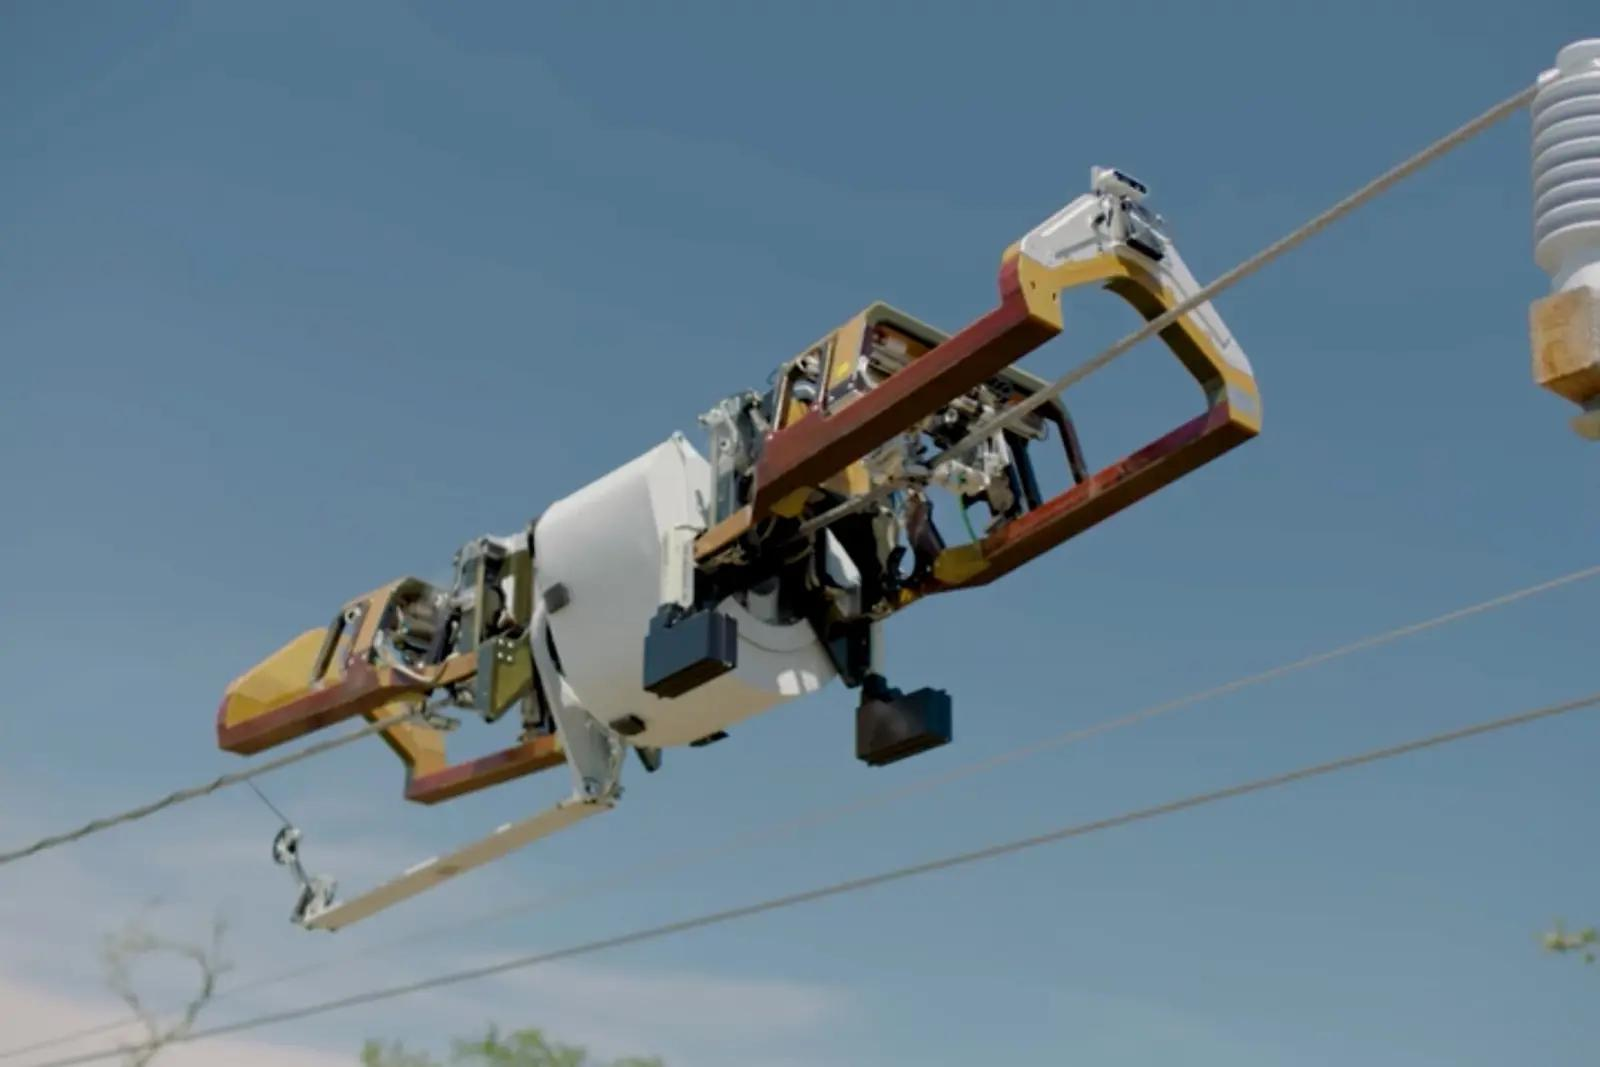 facebook fiber cable laying robot wrapping cable around an overhead power cable